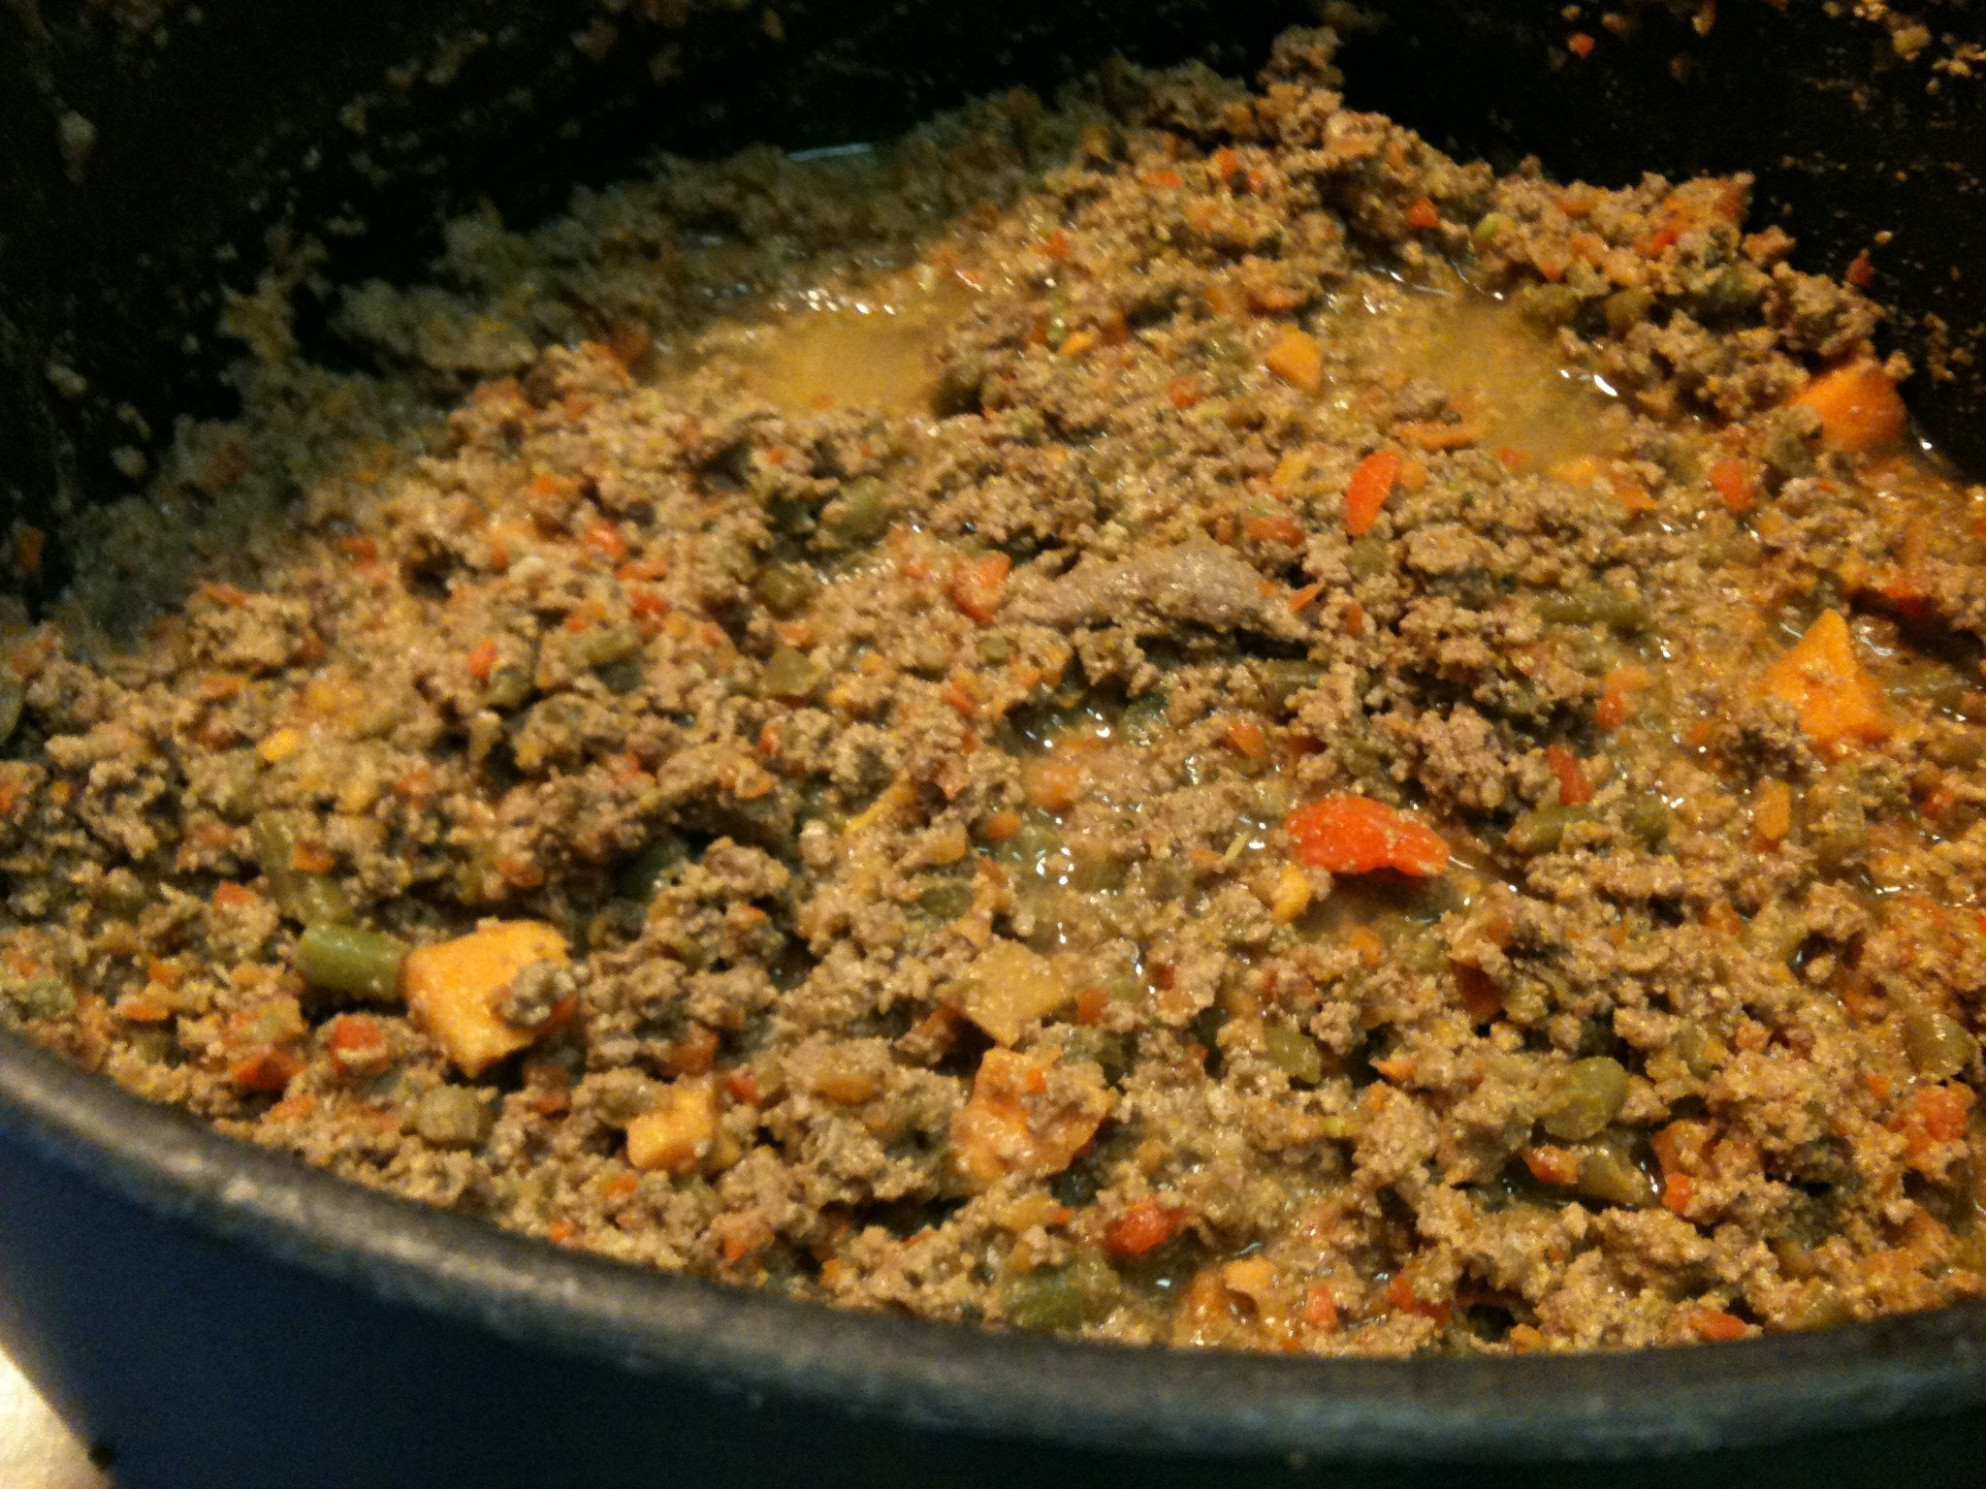 Top 15 Best Homemade Dog Food Recipes Outside Cooking Area - recipes homemade healthy dog food